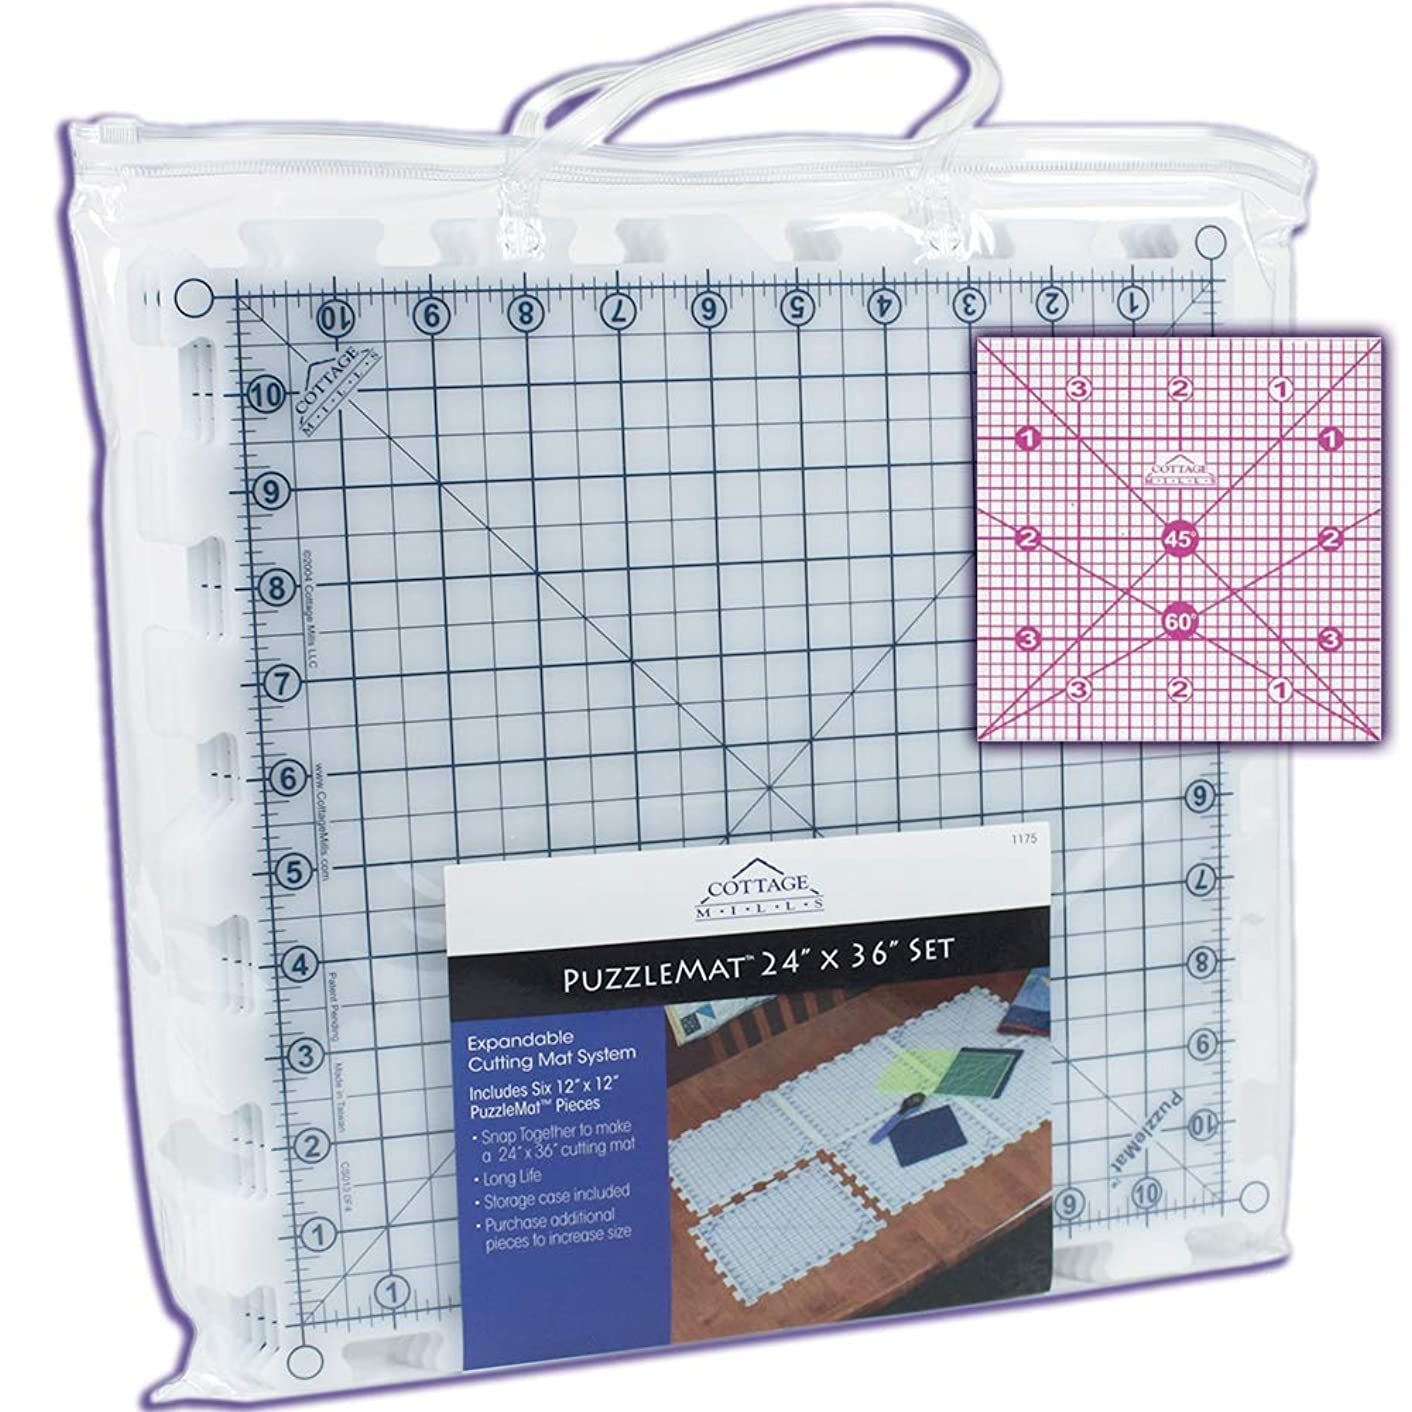 """PuzzleMat 24"""" x 36"""" Rotary Cutting Mat Set – Includes 6 – 12"""" x 12"""" pieces and carrying case. Perfect for the quilter on the go! ++ Bonus FREE 4"""" x 4"""" acrylic ruler a $5.99 value ++"""